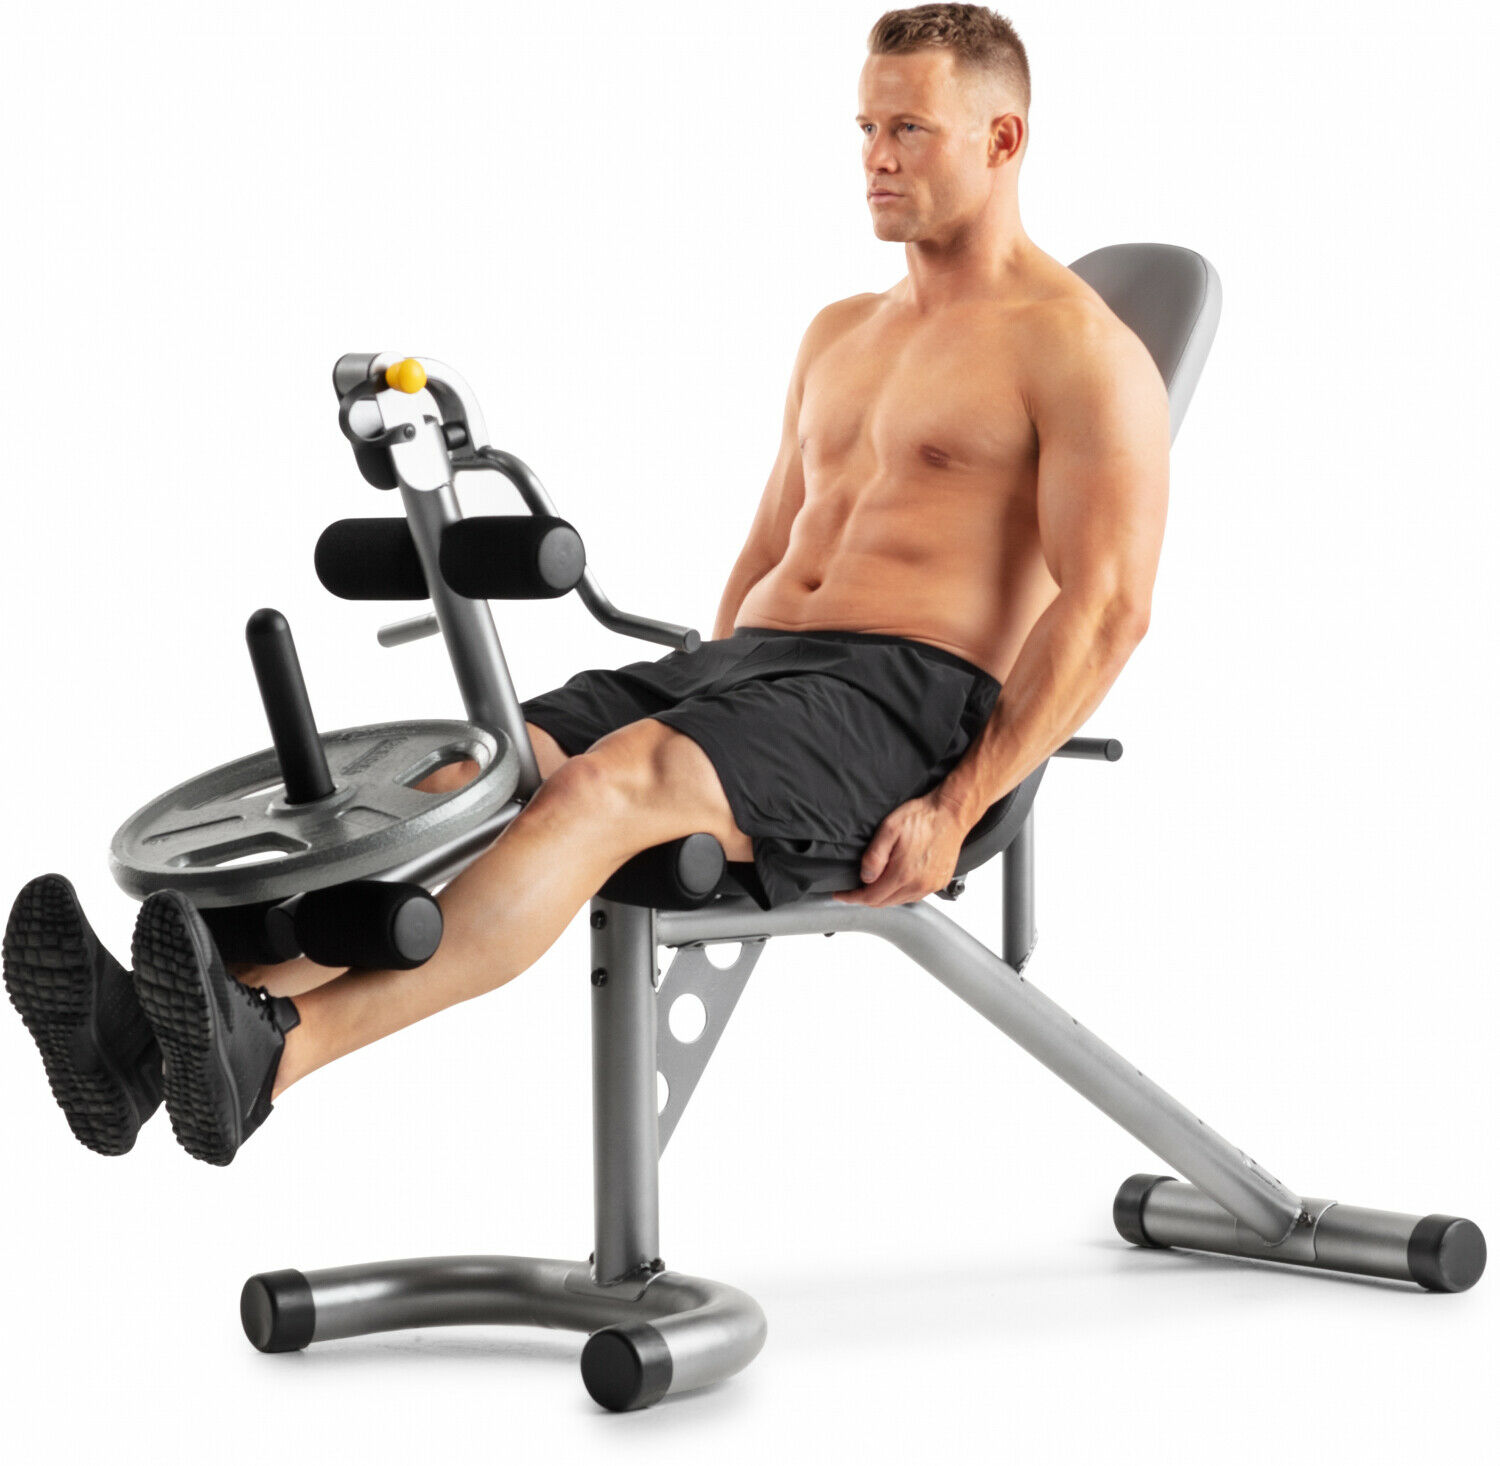 XRS 20 Olympic Workout Bench W  Removalle Preacher Pad Home Exercise Equipment